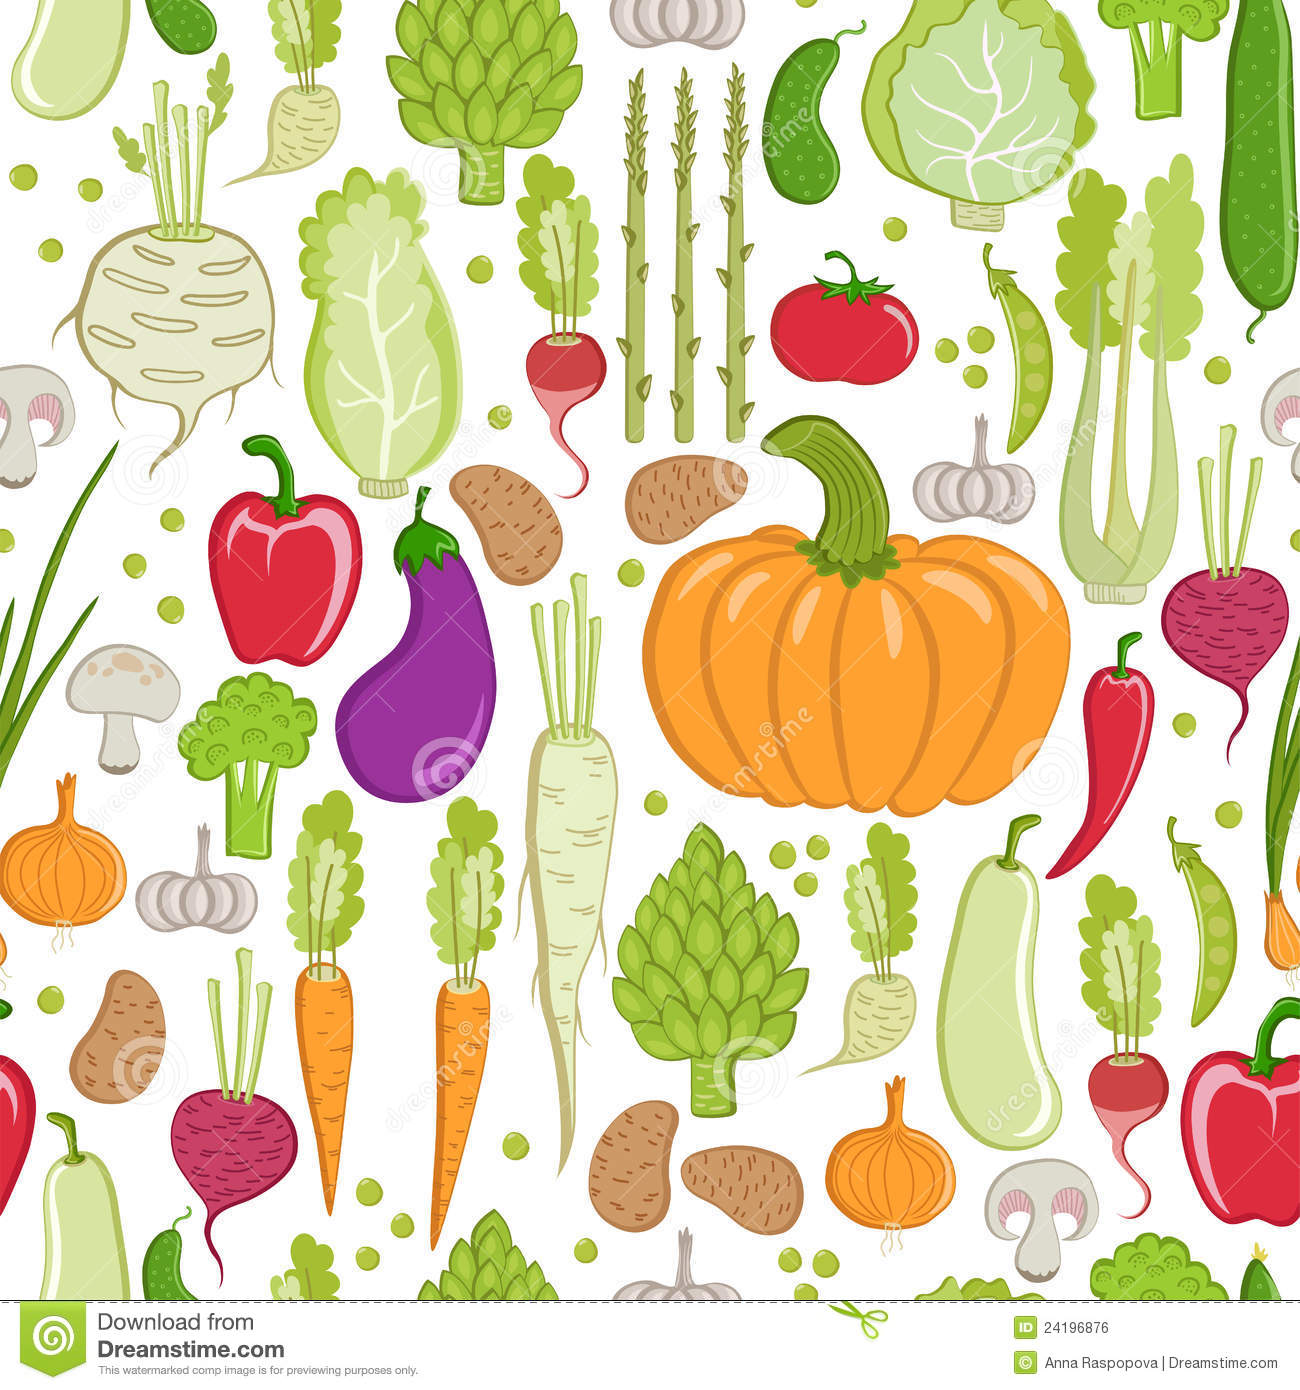 Vegetable pattern - photo#7